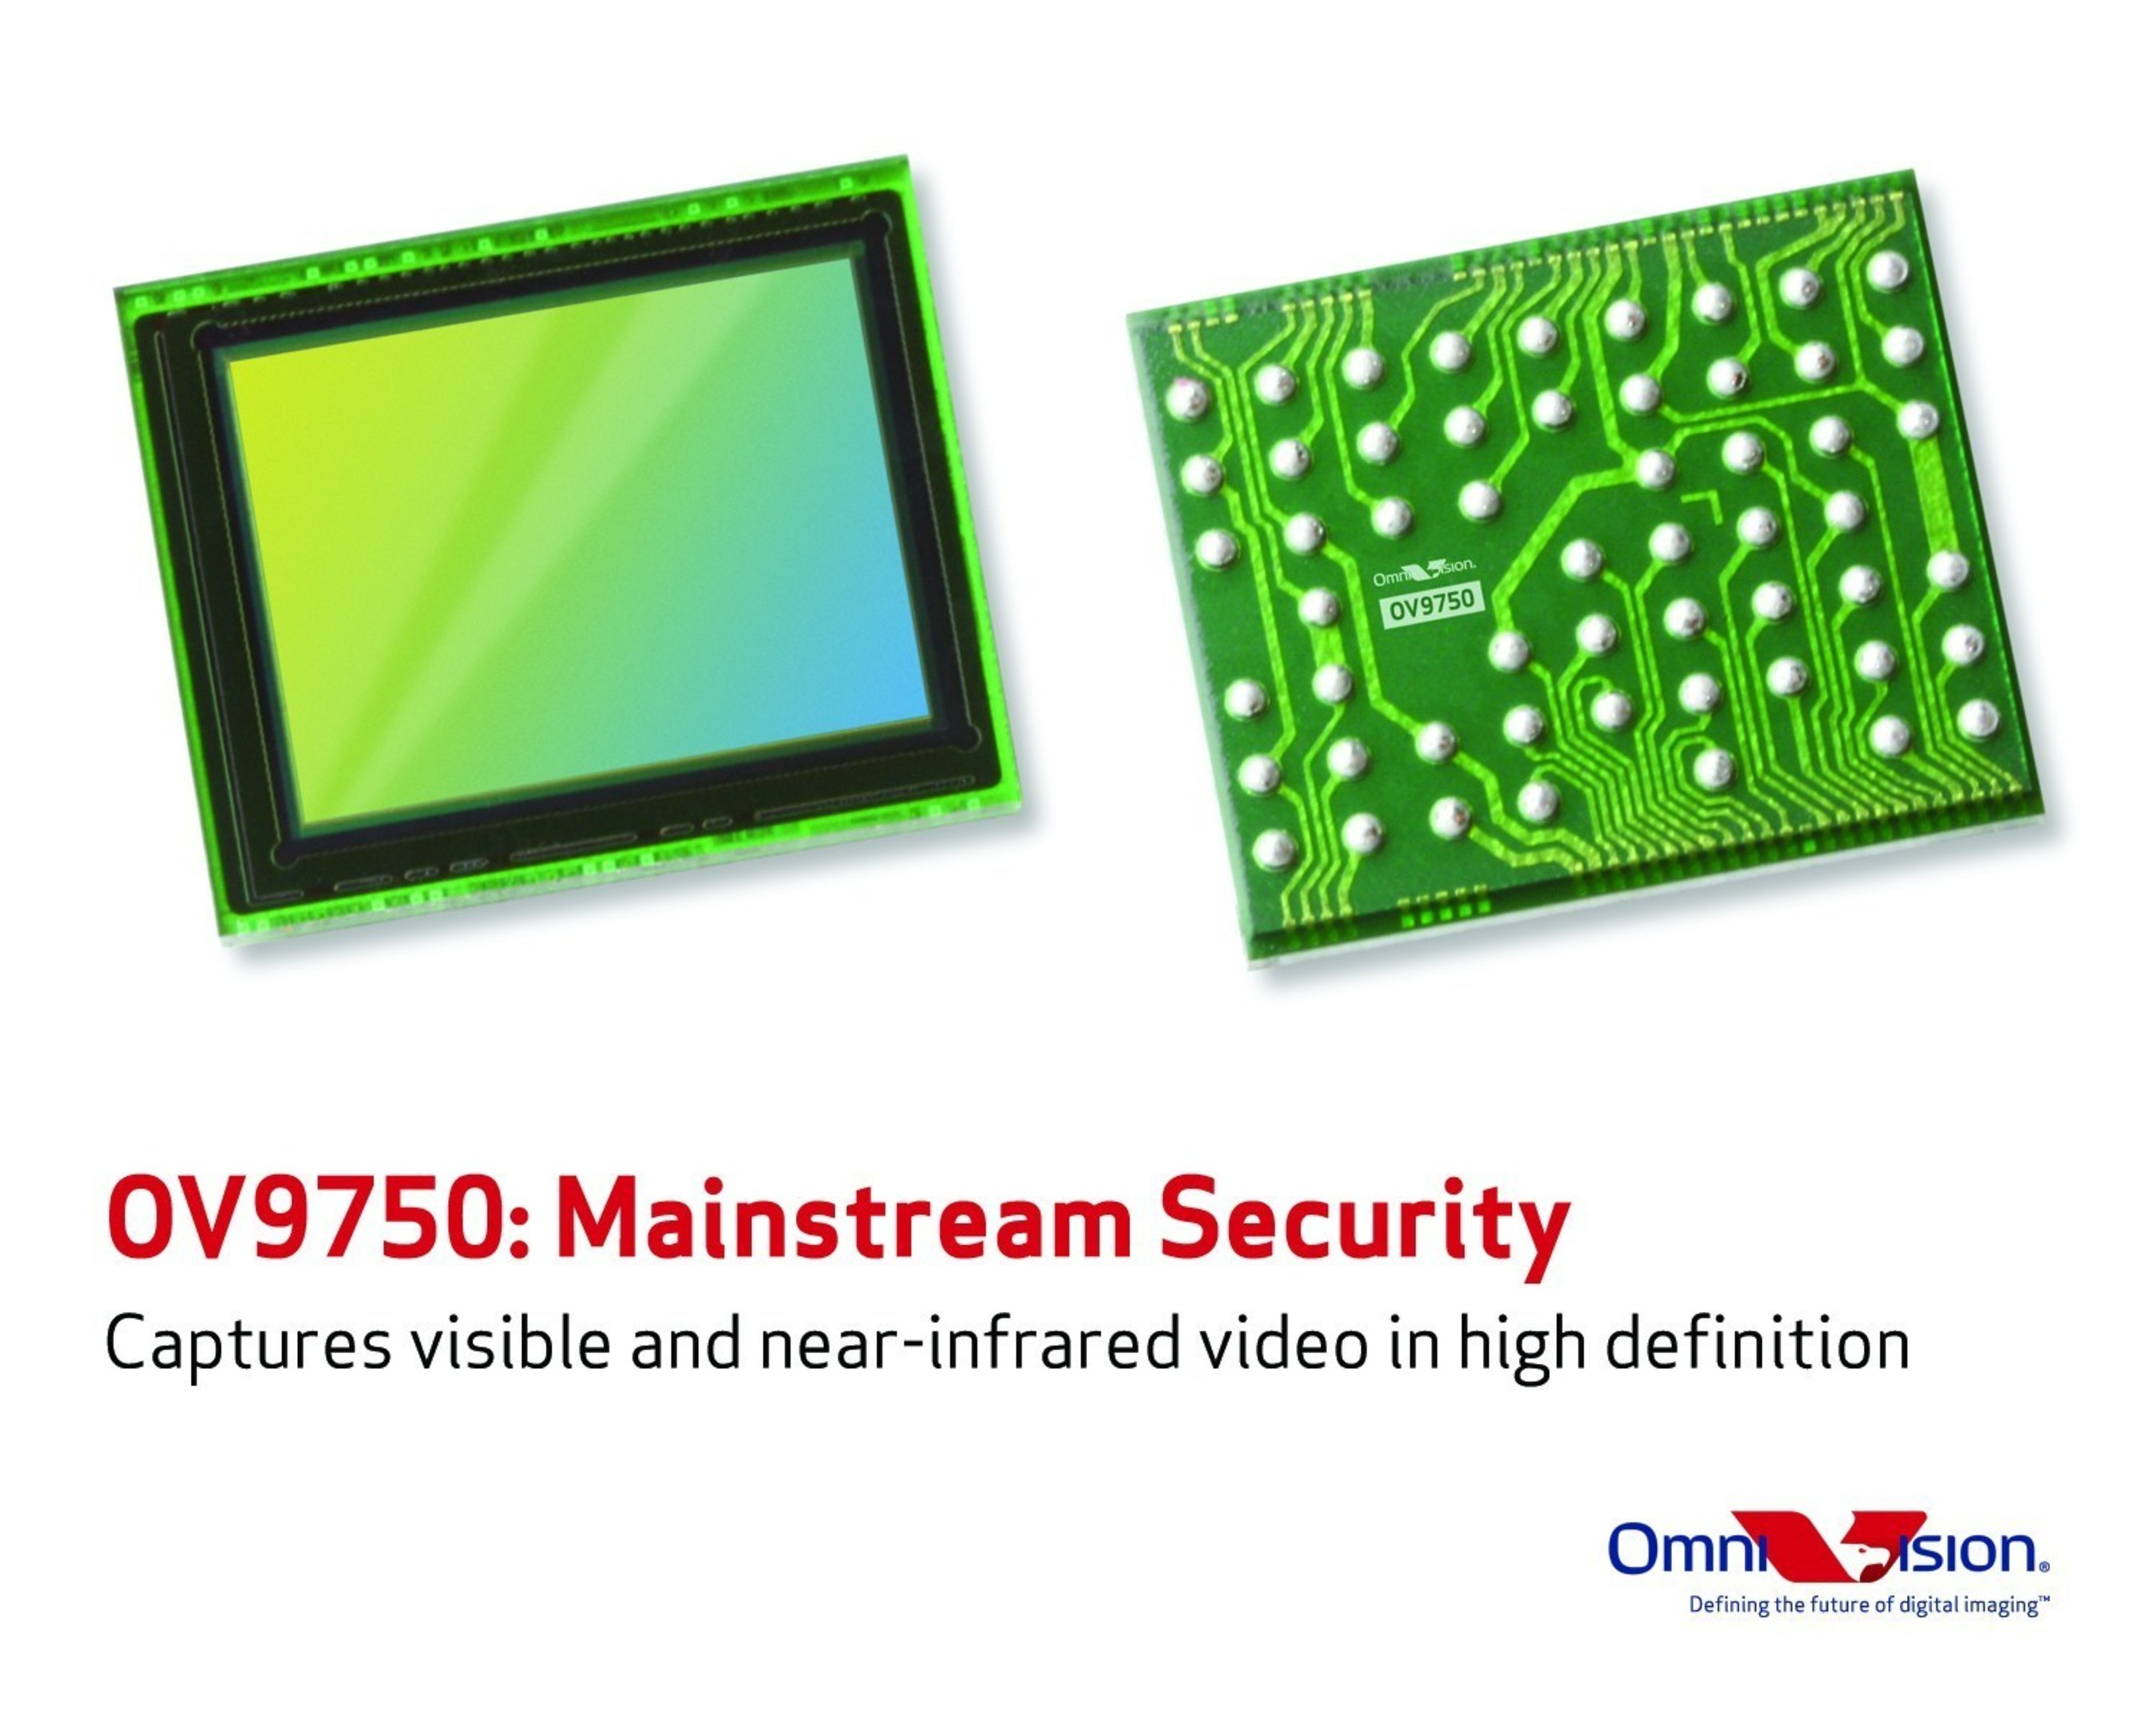 OV9750 captures visible and near-infrared video in HD for mainstream security systems.